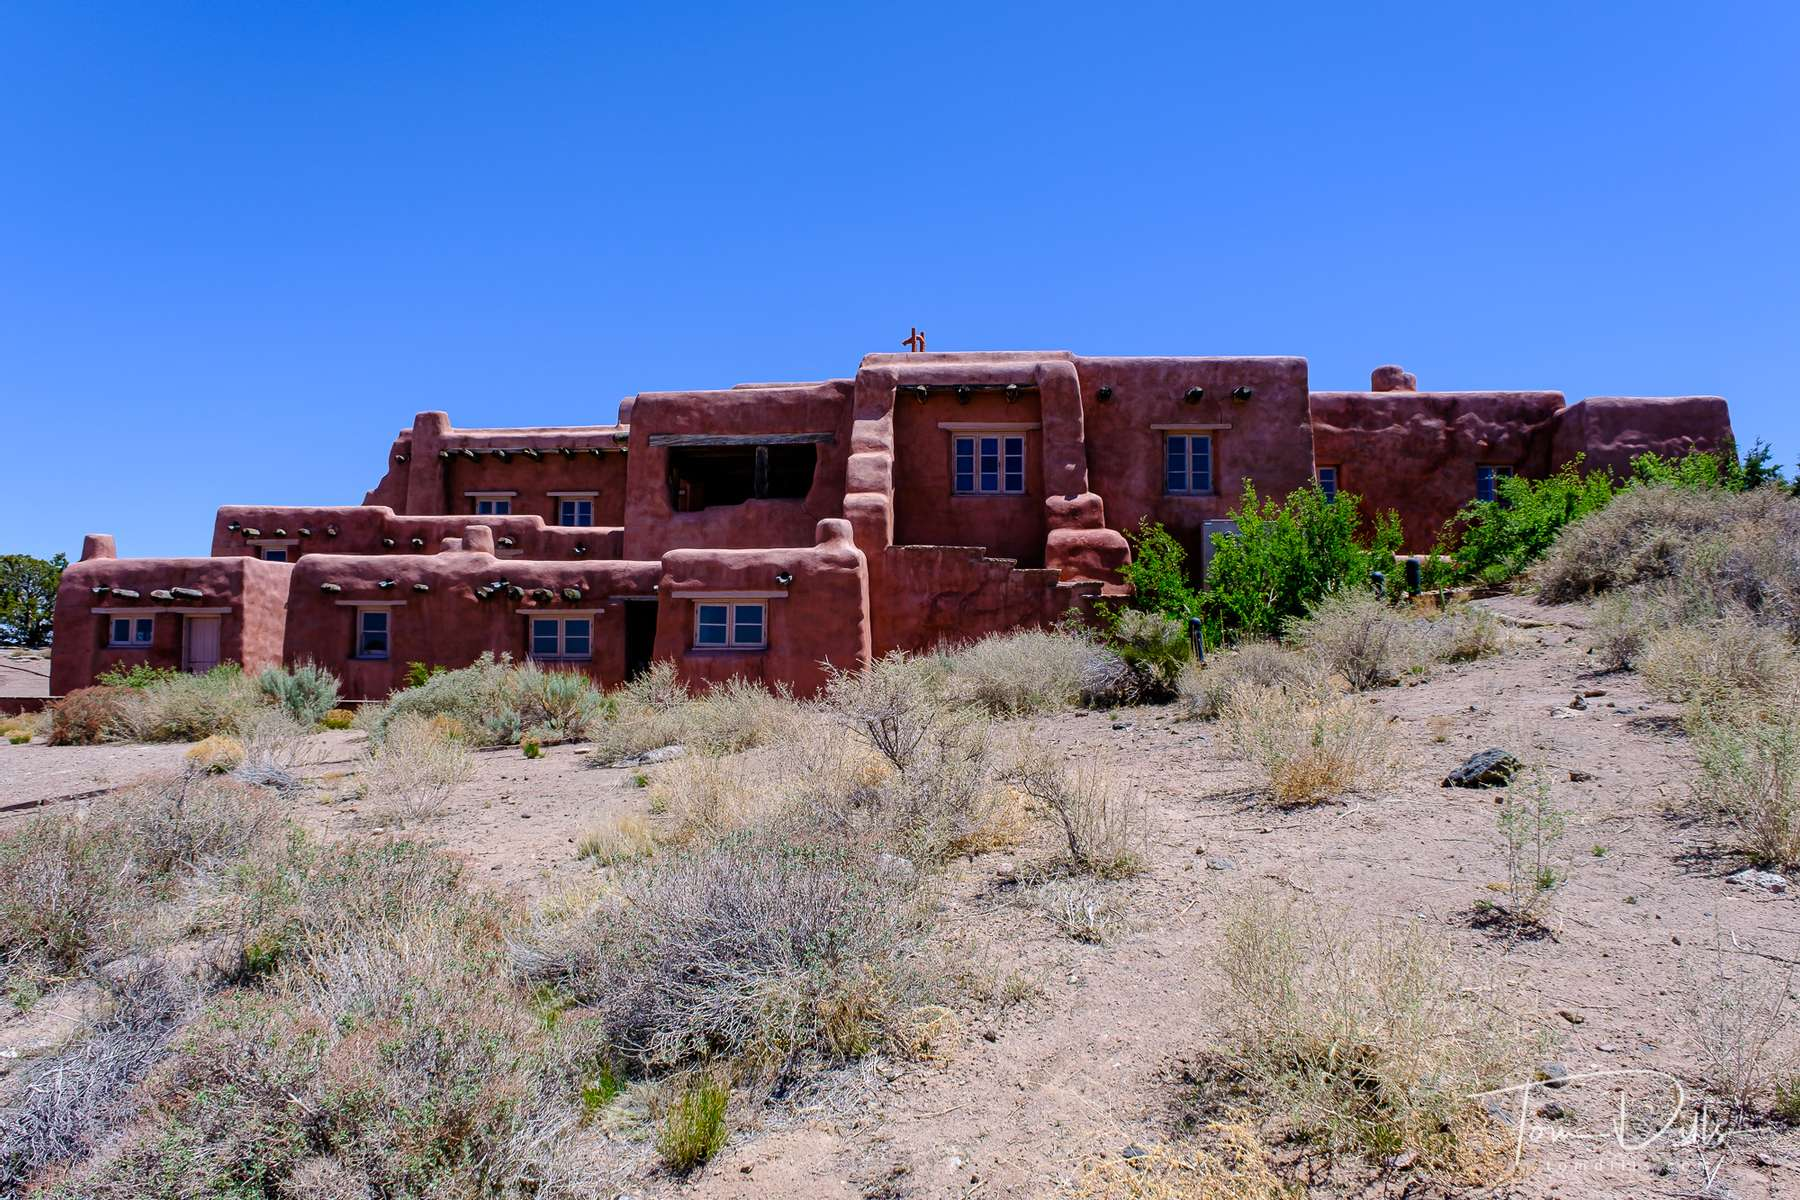 The Painted Desert Inn, now used as a visitor center for the Painted Desert, part of Petrified Forest National Park in Arizona